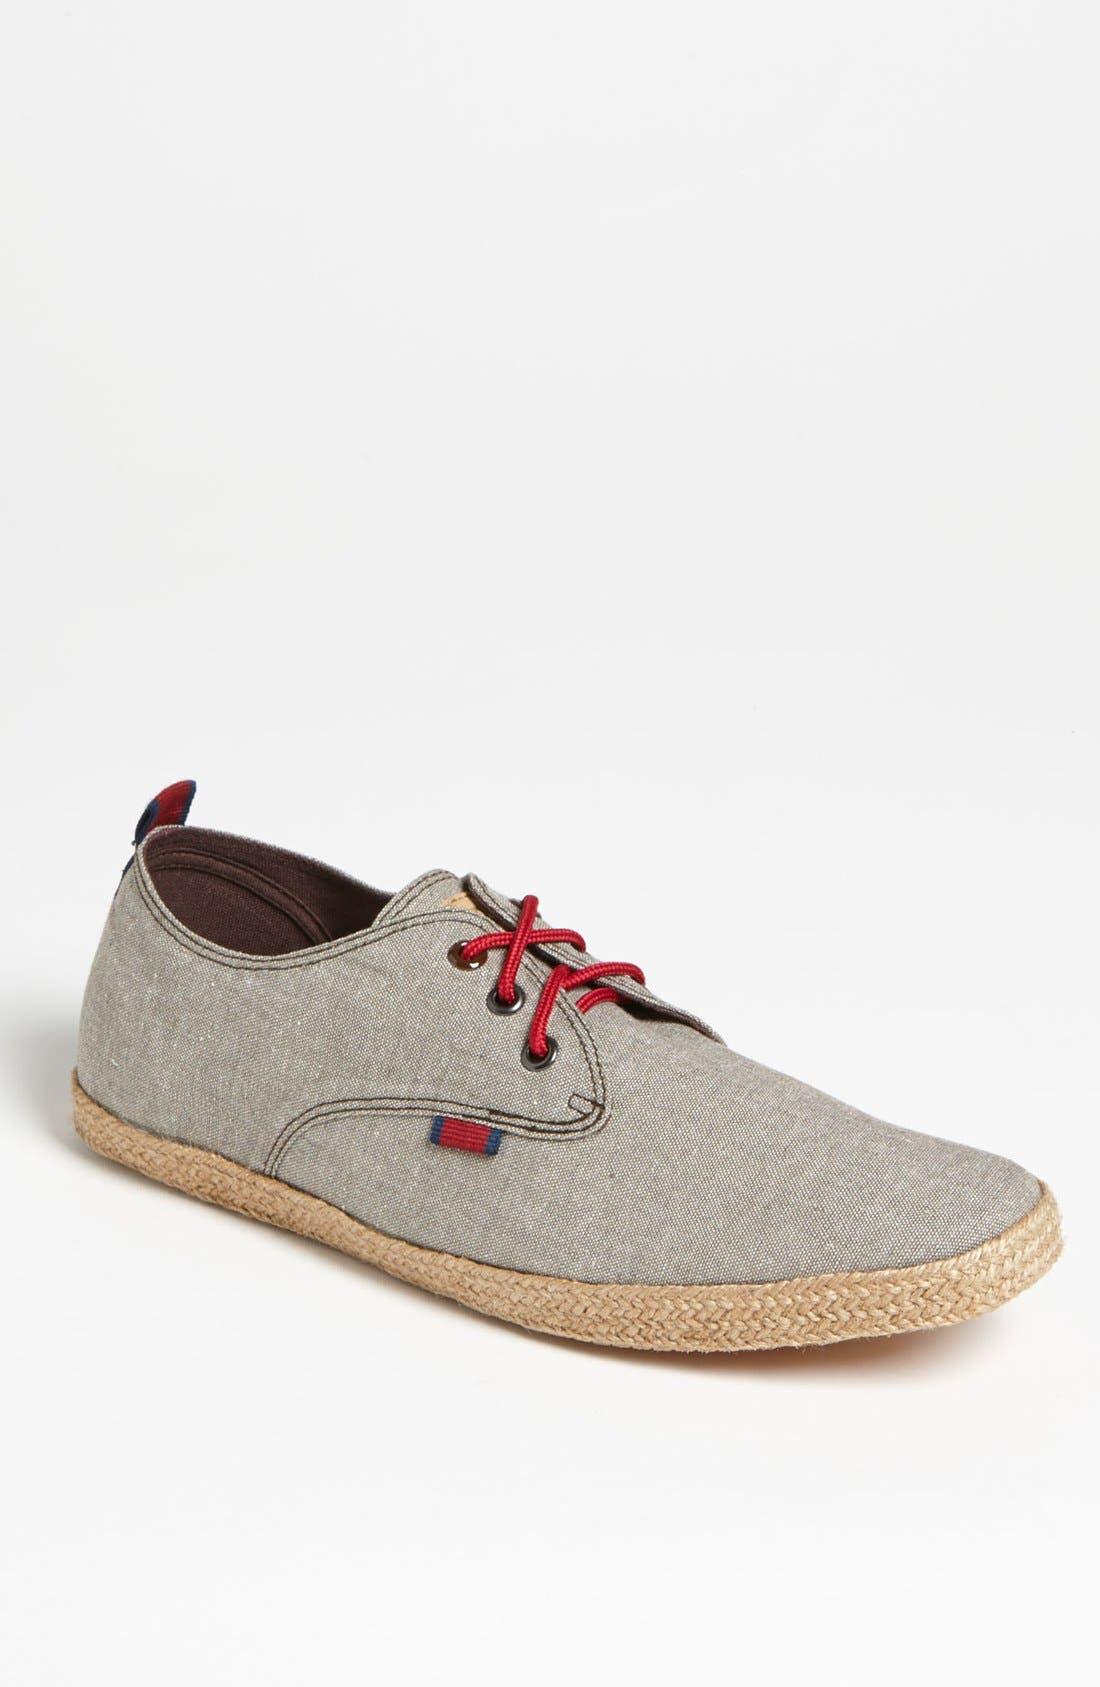 Alternate Image 1 Selected - Ben Sherman 'Pril' Sneaker (Men)